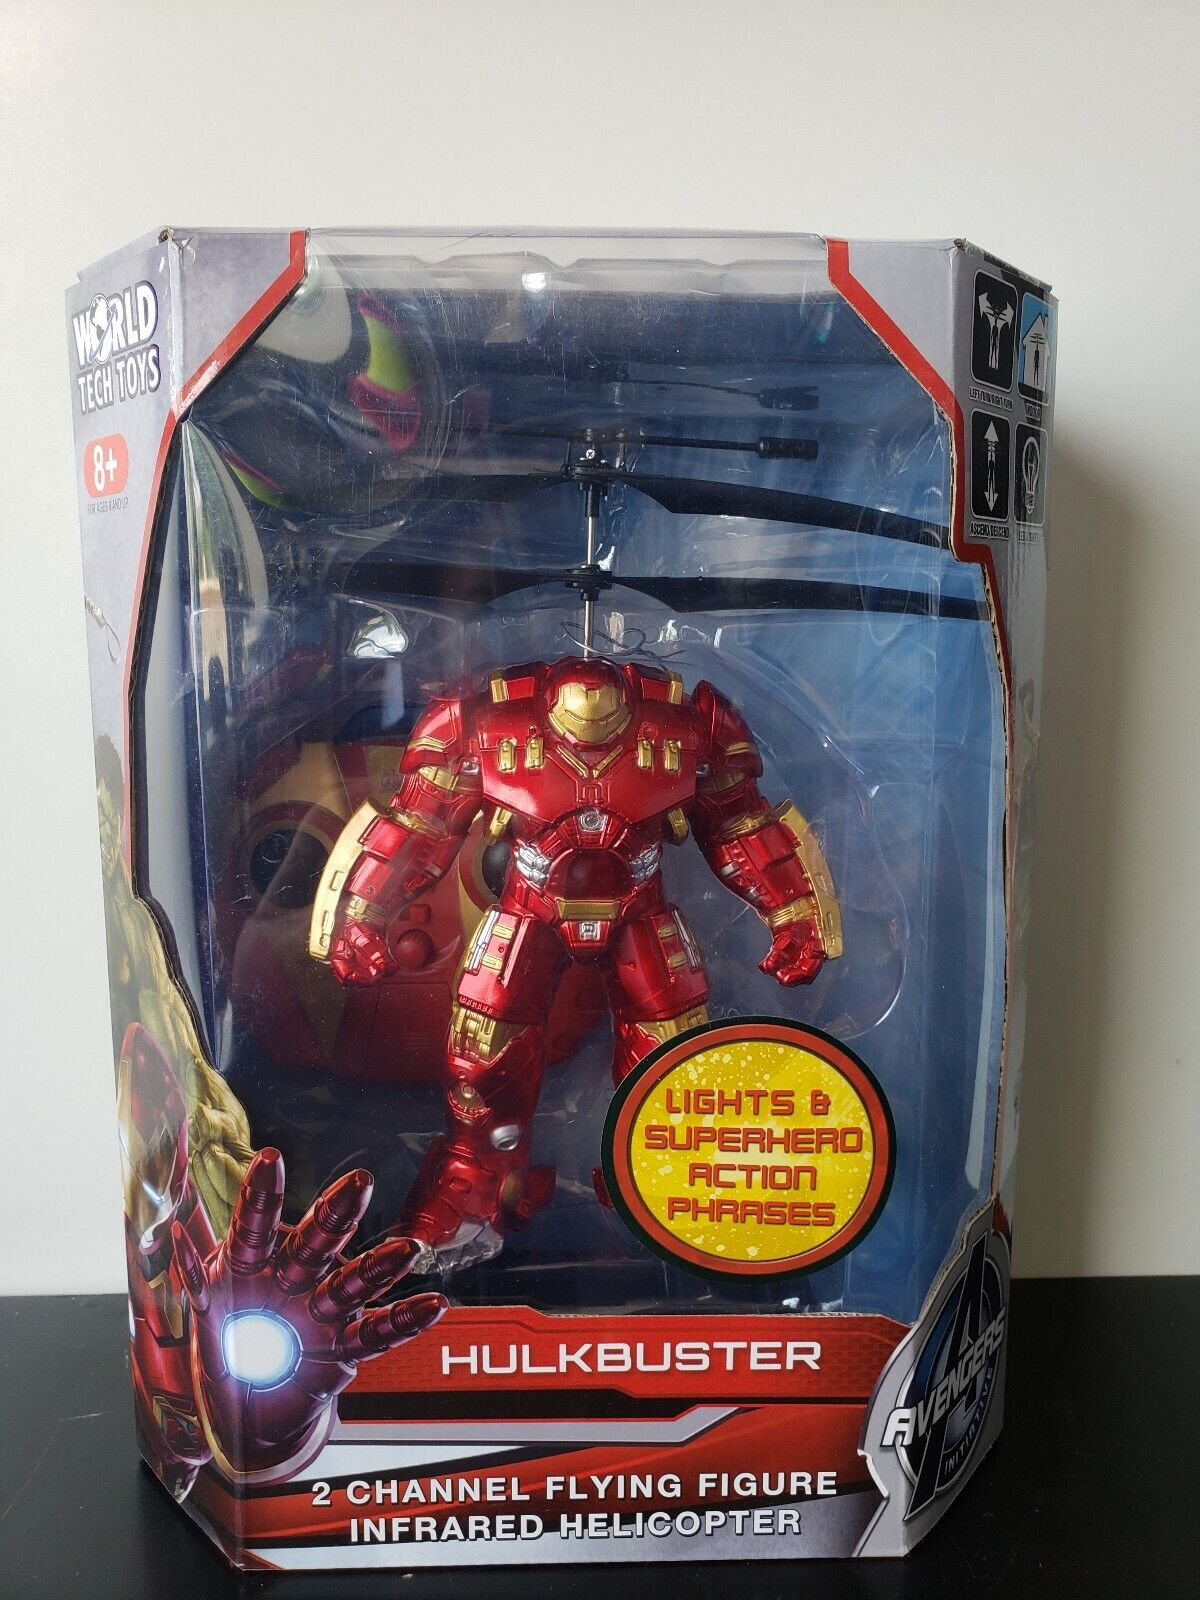 Helicopter Marvel Avengers Age of Ultron Hulkbuster 2 channel Flying Figure